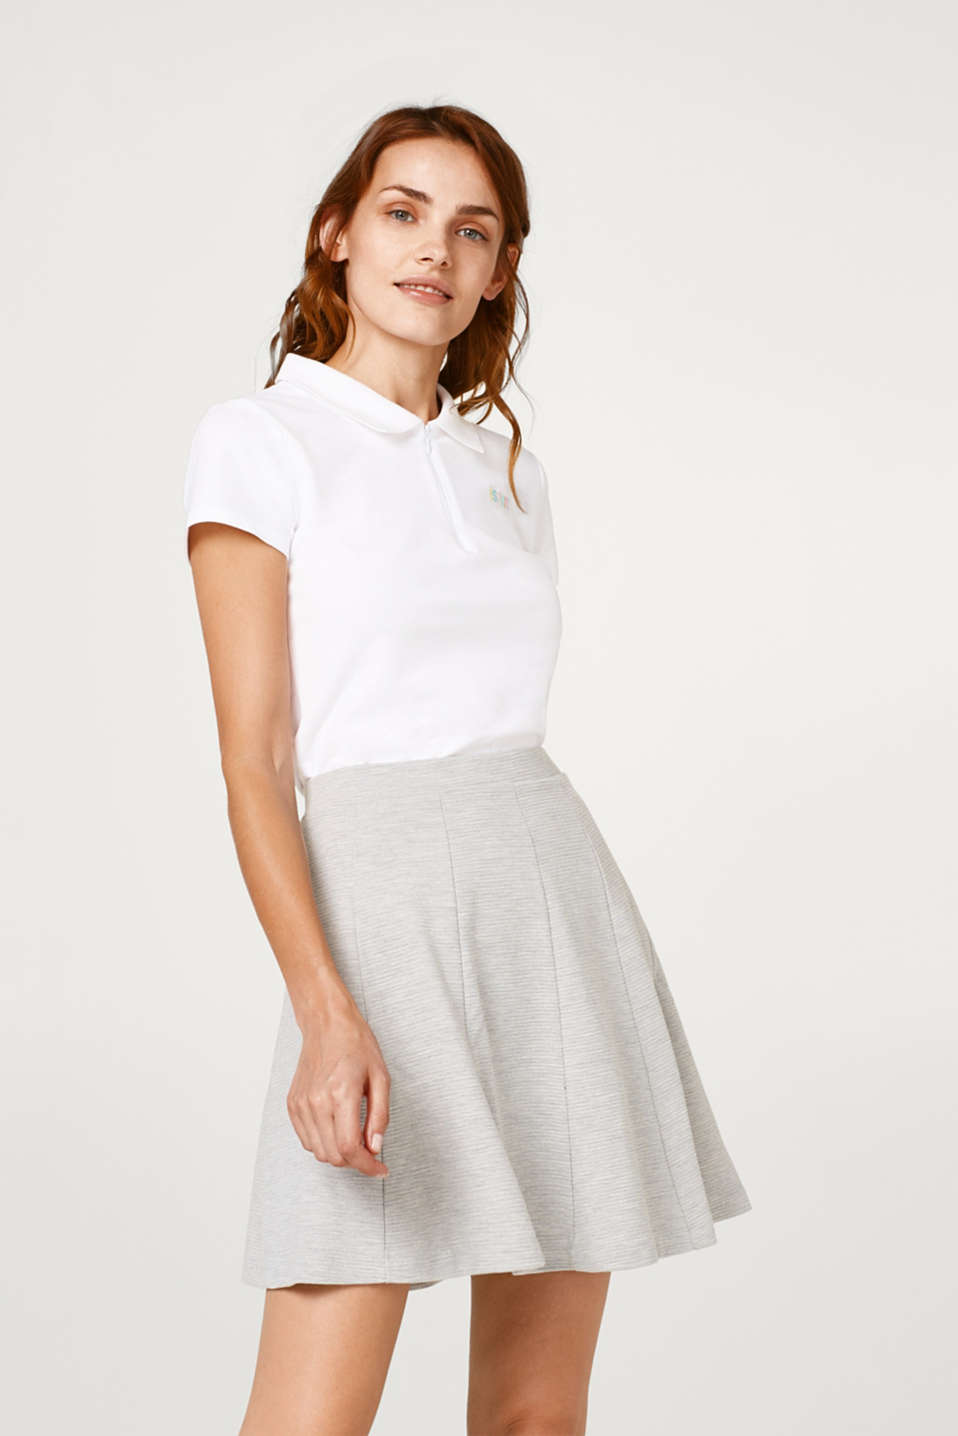 Esprit - Wide, swirling jersey skirt with a ribbed texture